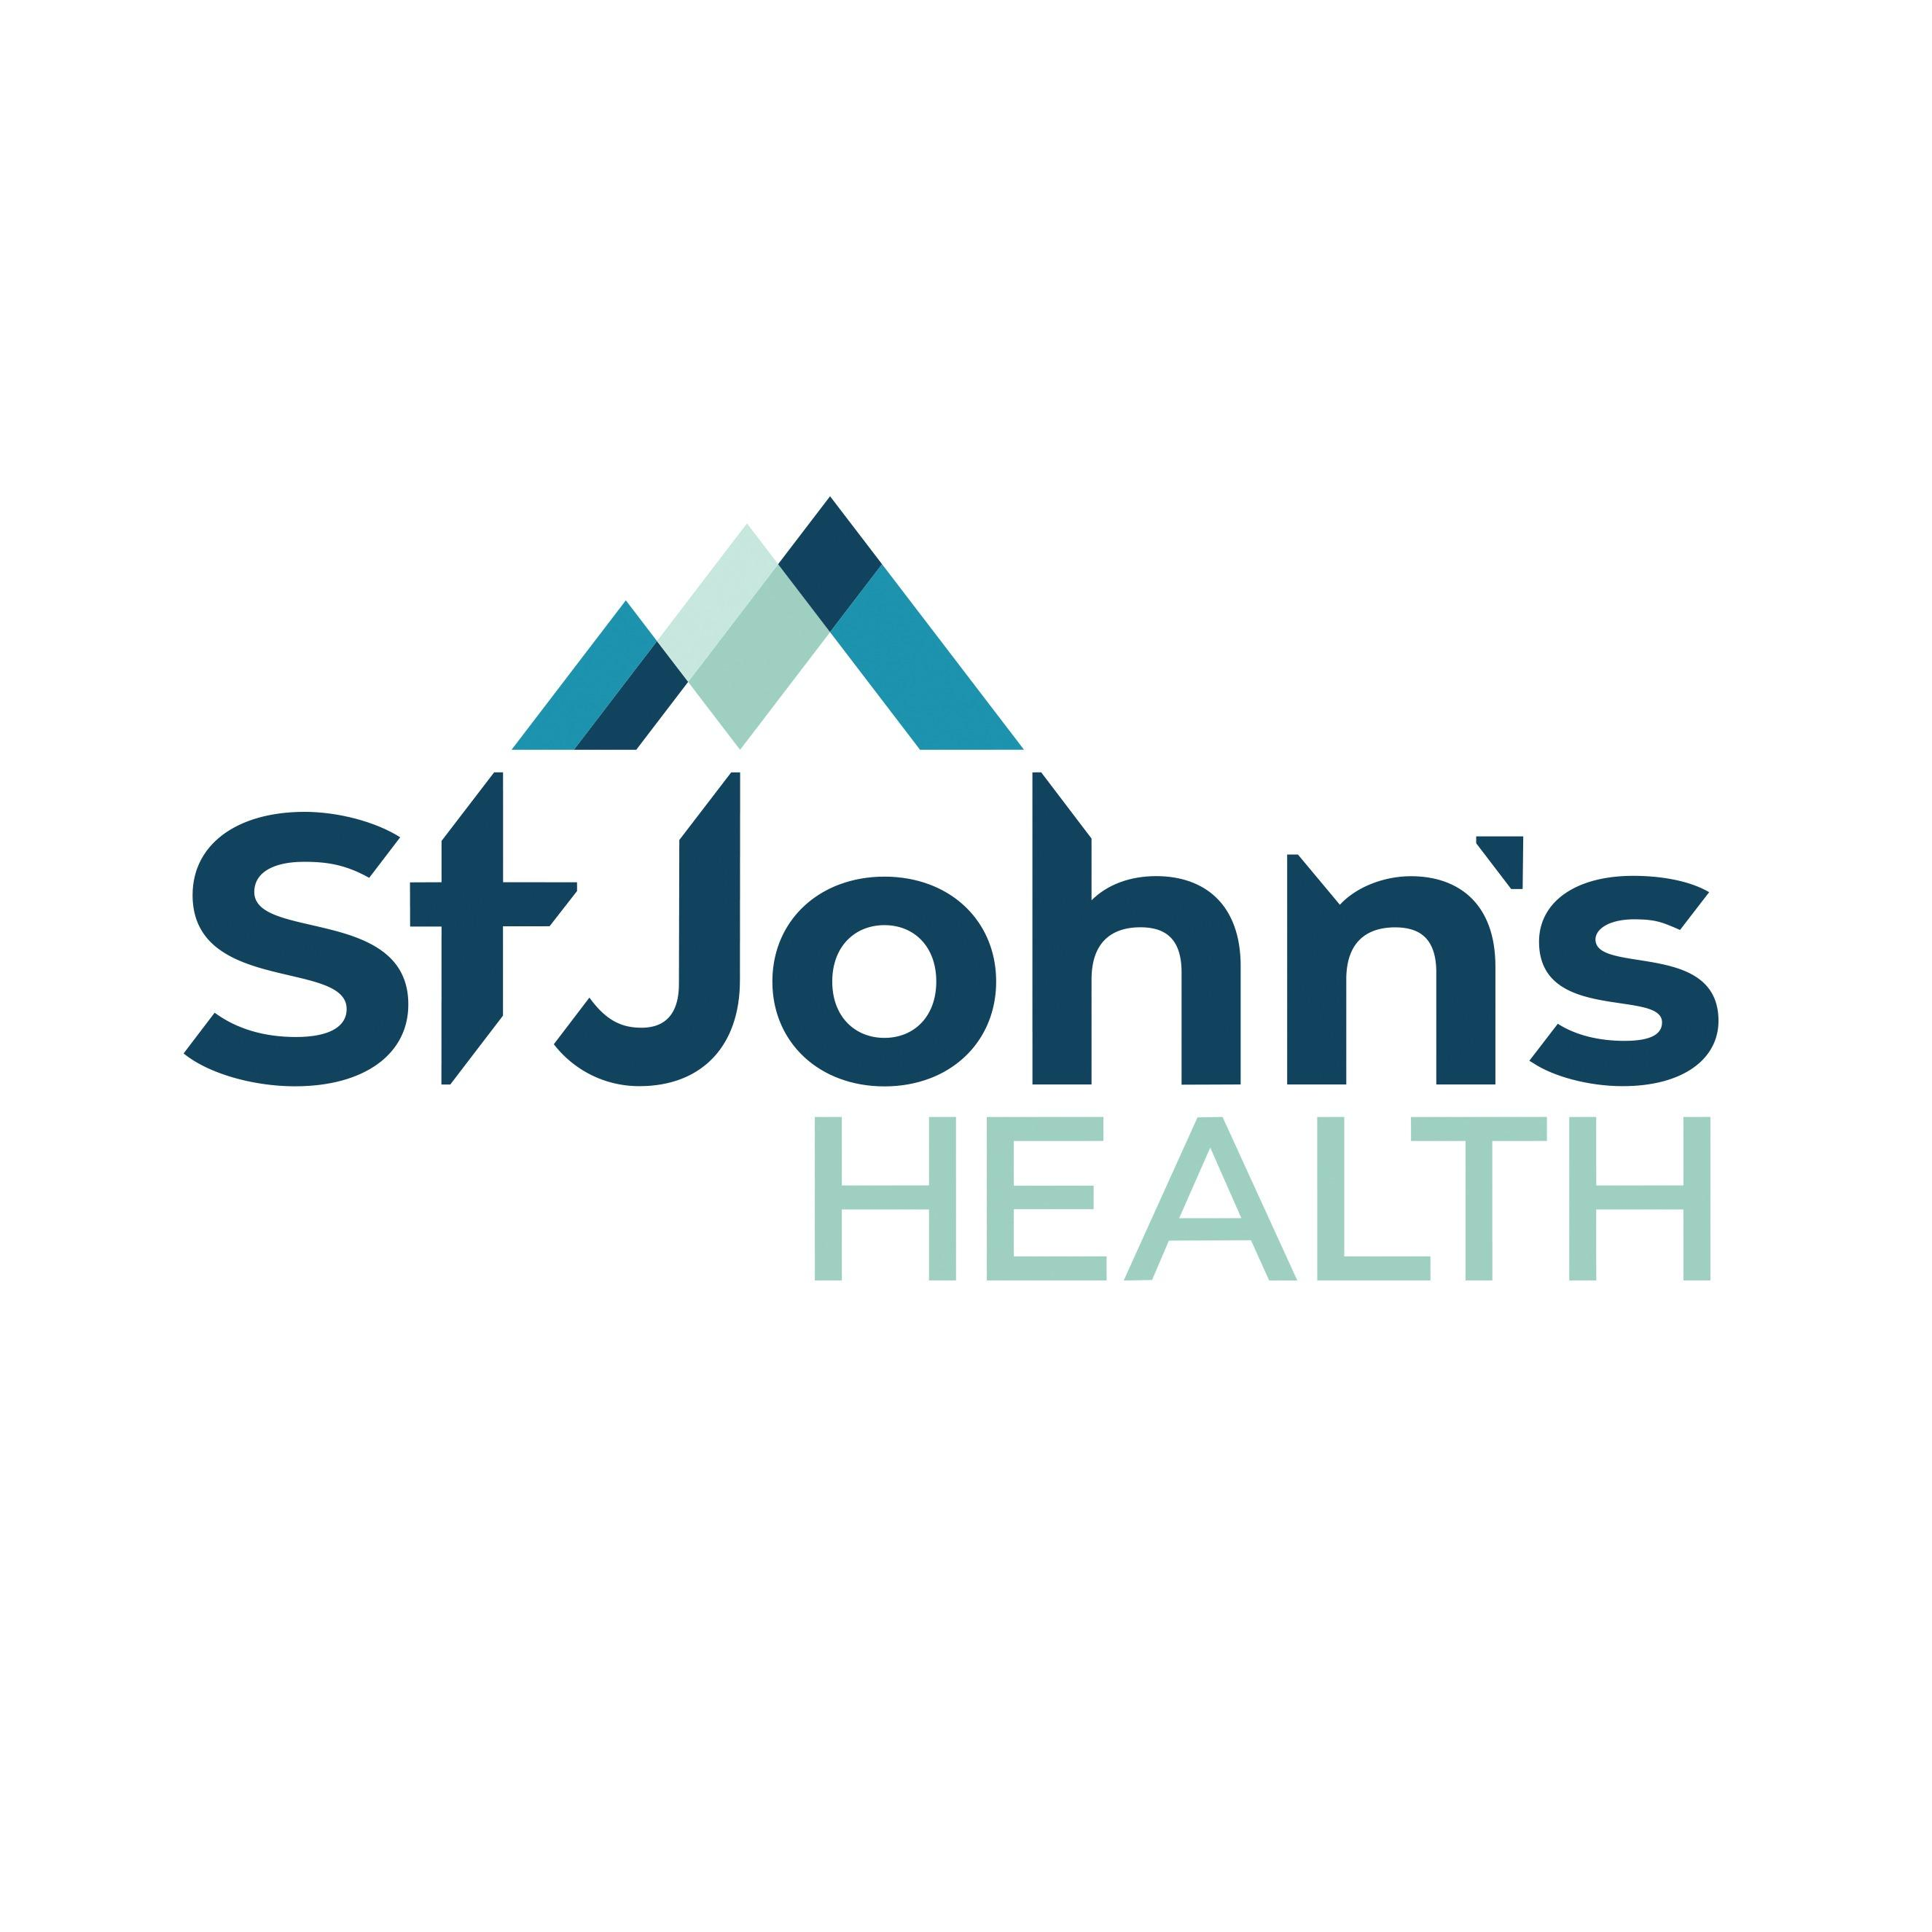 St. John's Health, Update from the CEO: COVID-19